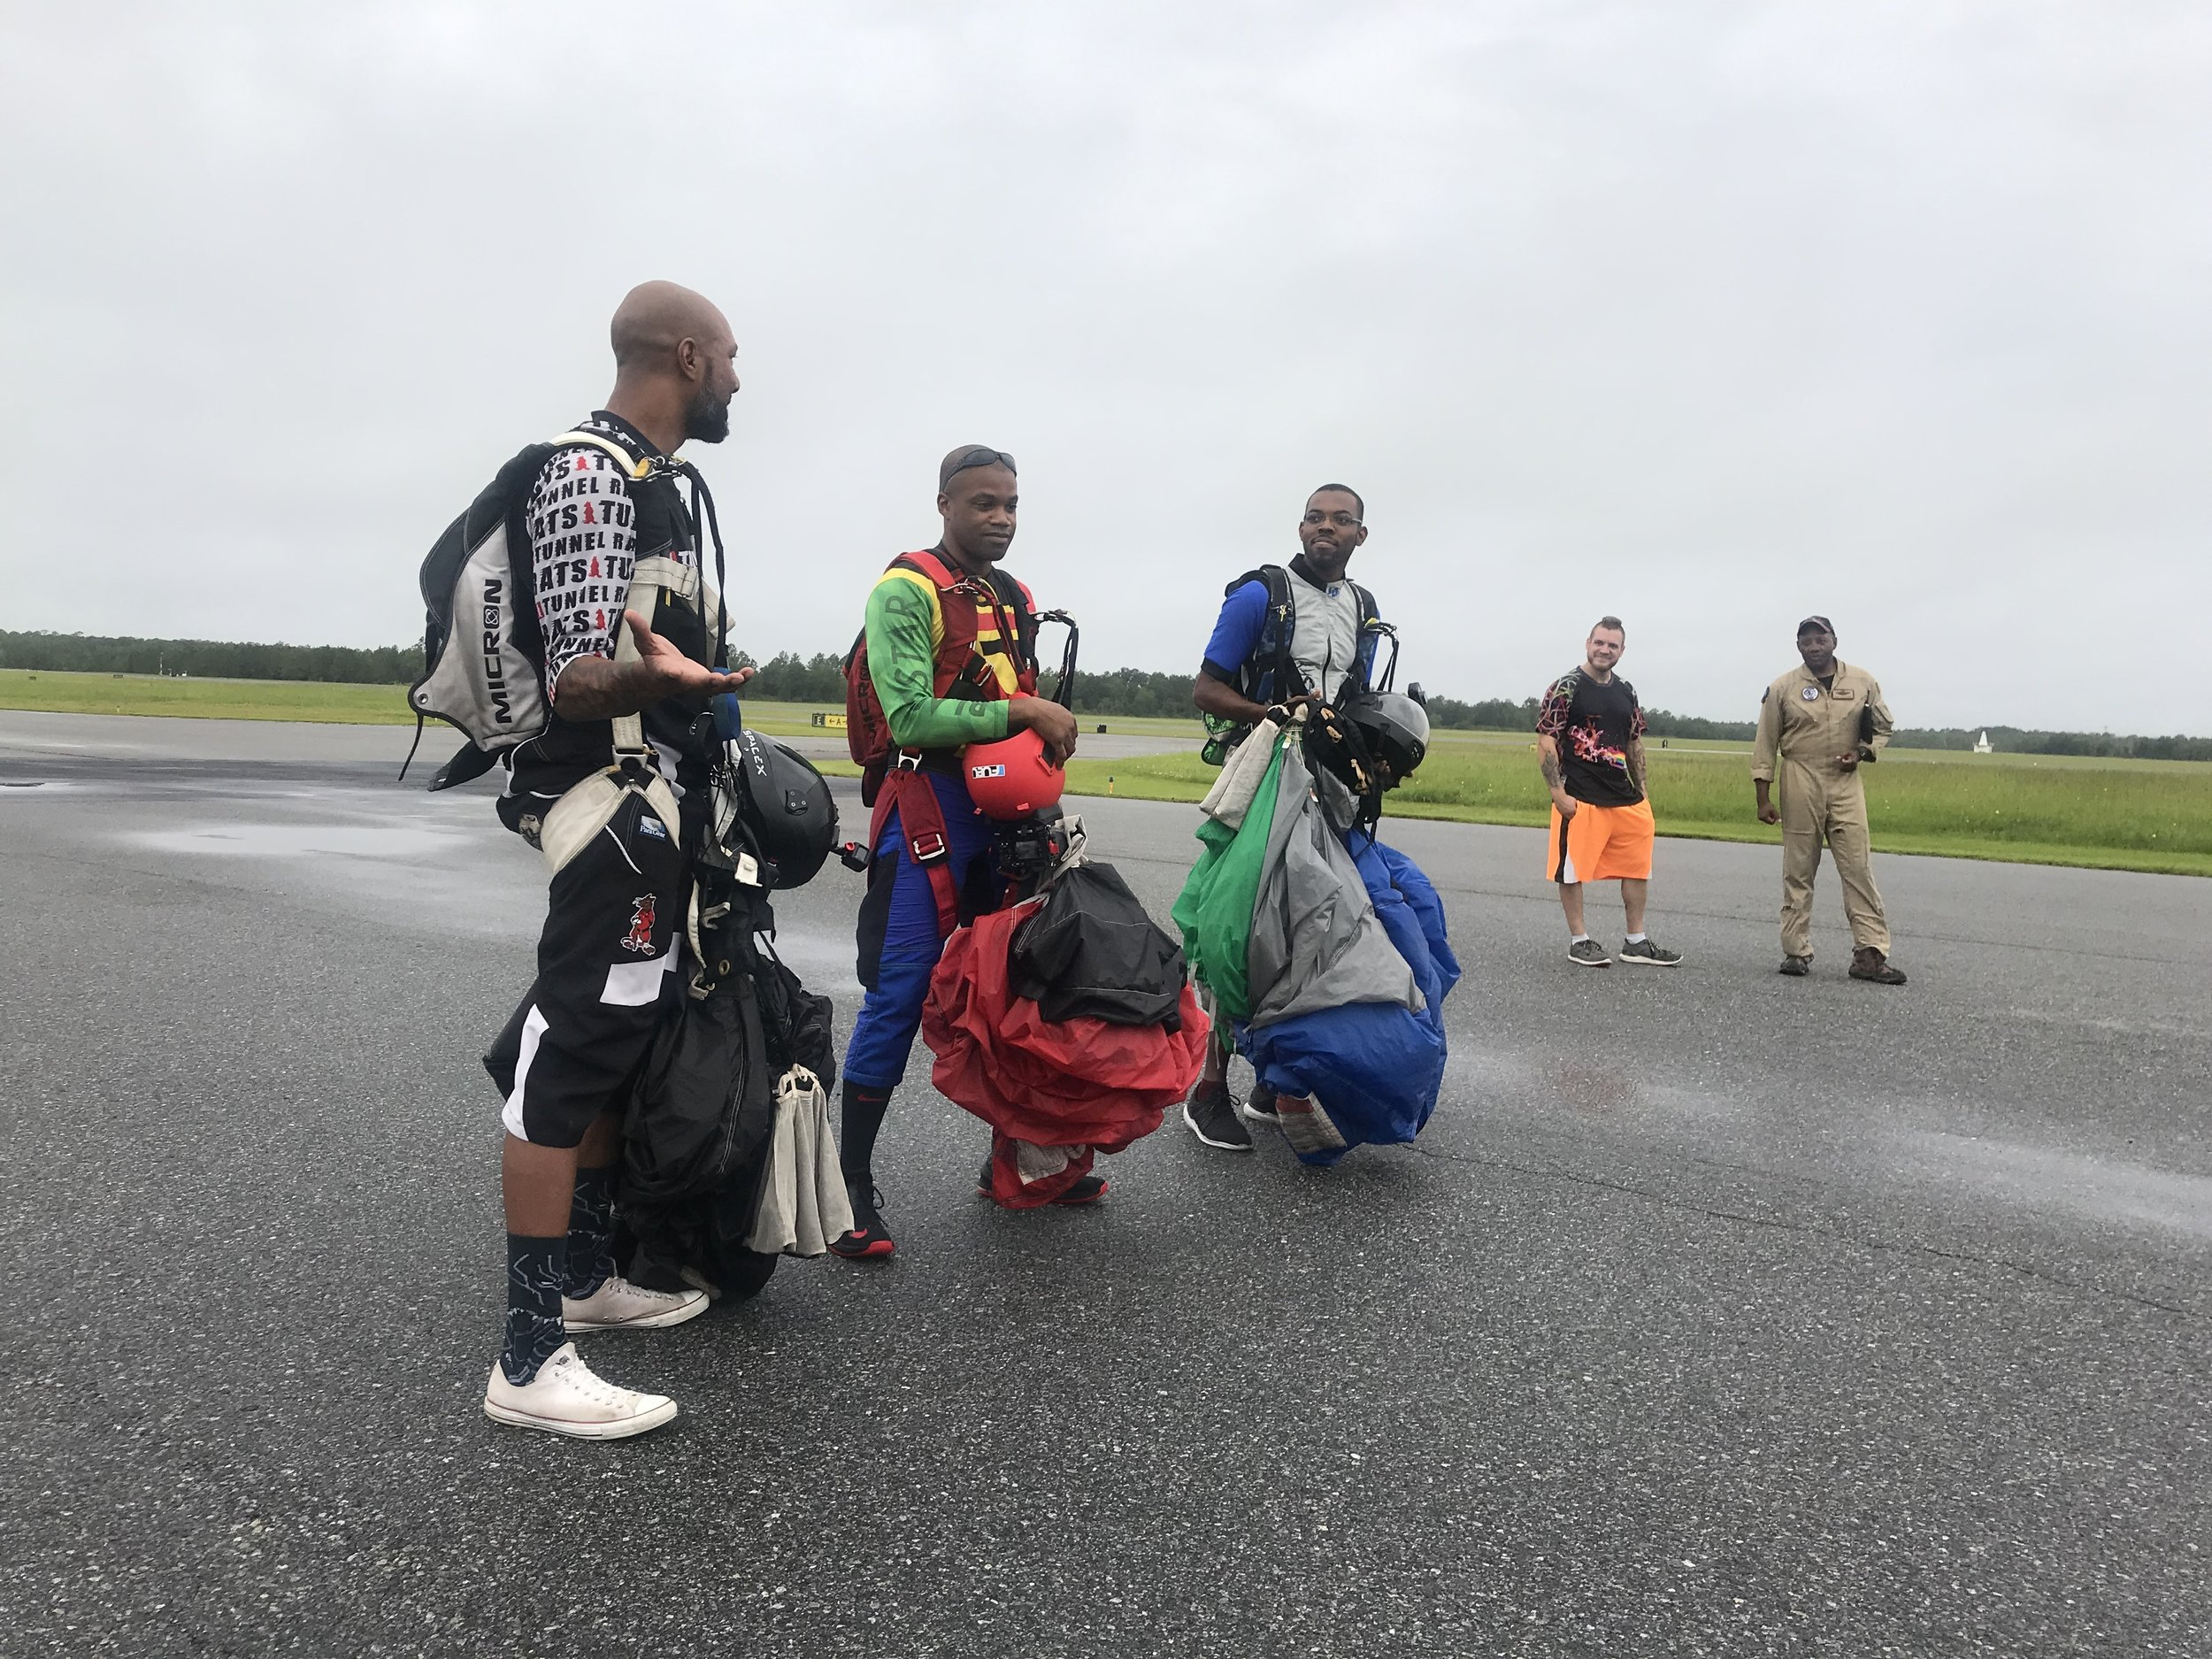 After a successful landing the skydivers briefly answered questions on the ramp.  Photo courtesy of Danielle Williams